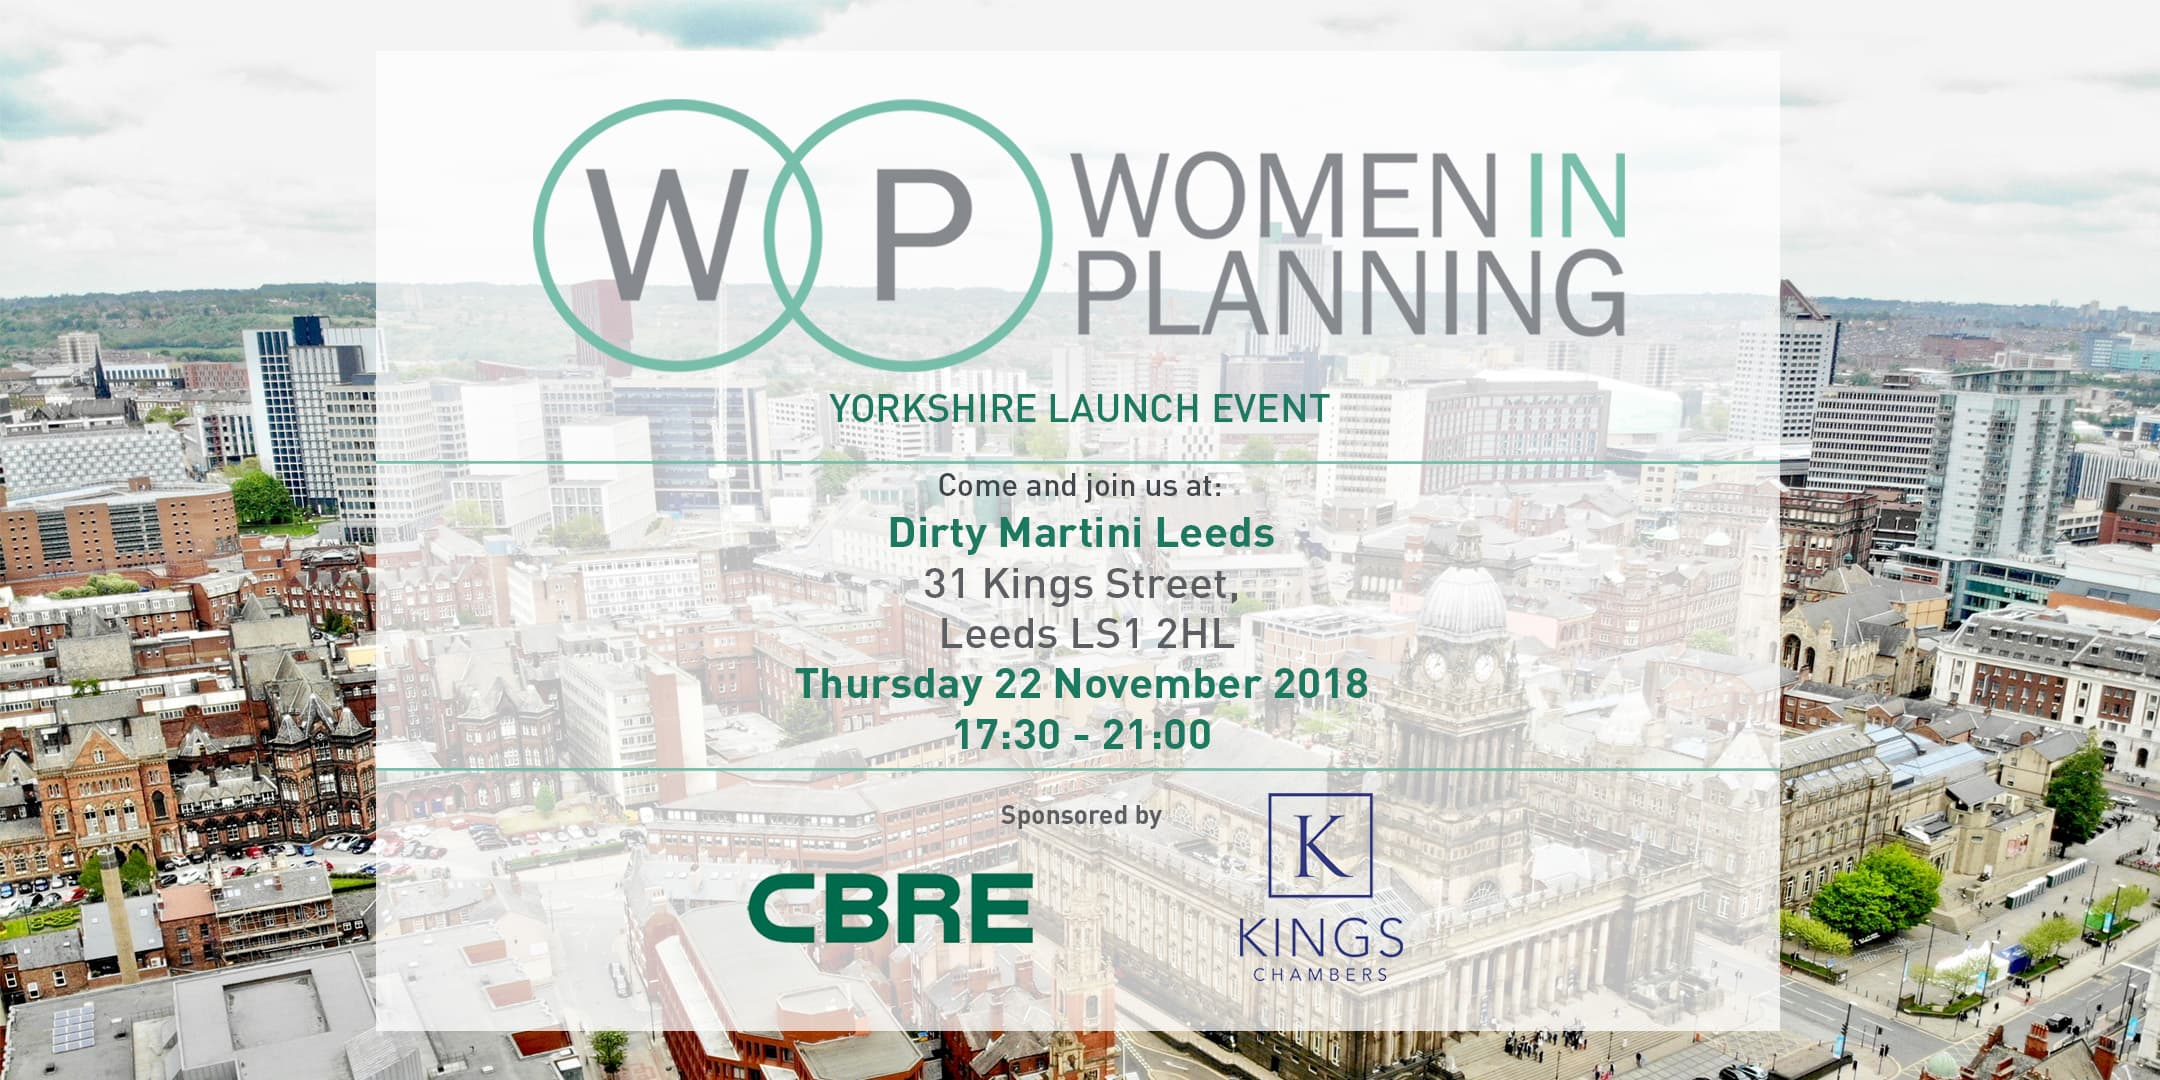 Kings Chambers supports Women in Planning Yorkshire launch